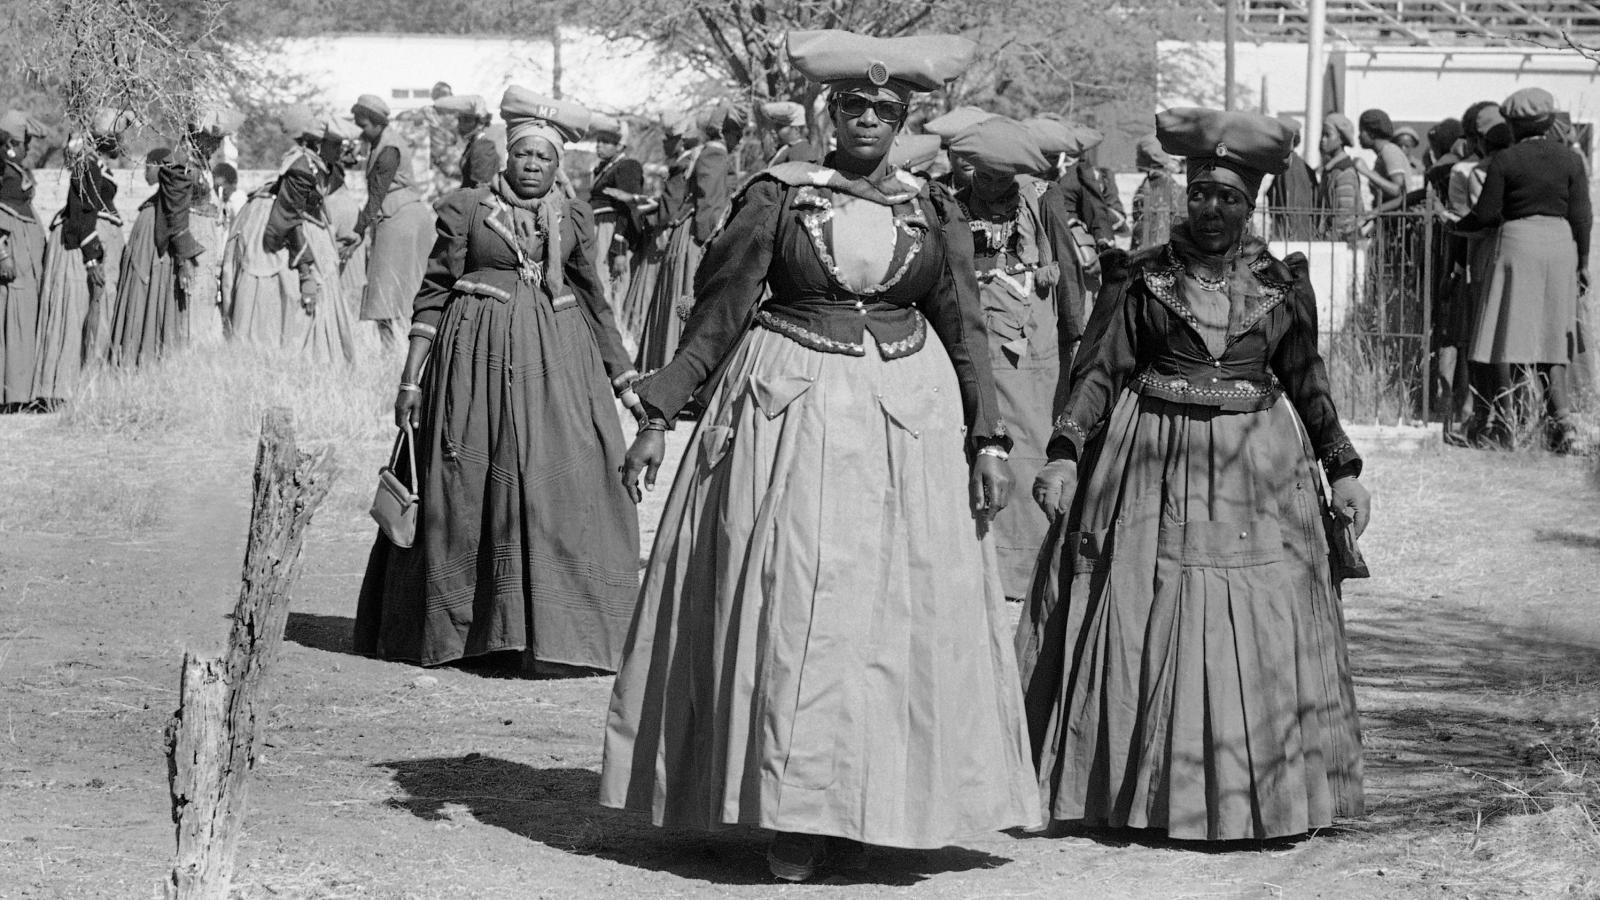 Women of the Herero tribe show their traditional dress in Windhoek